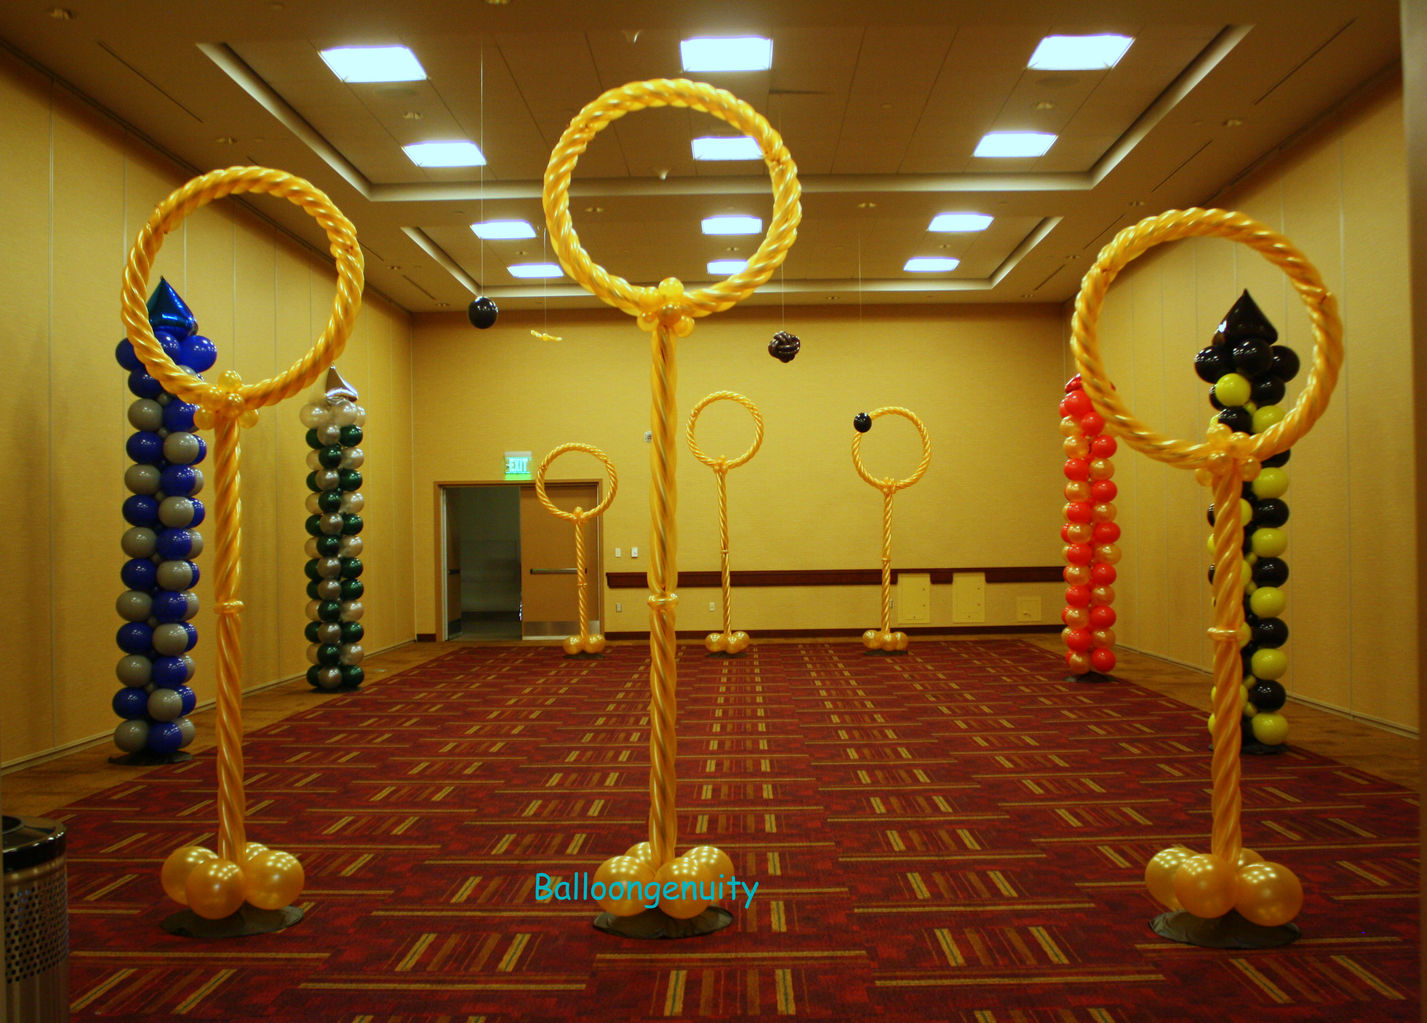 Balloongenuity ingenious balloon creativity central for Balloon dance floor decoration